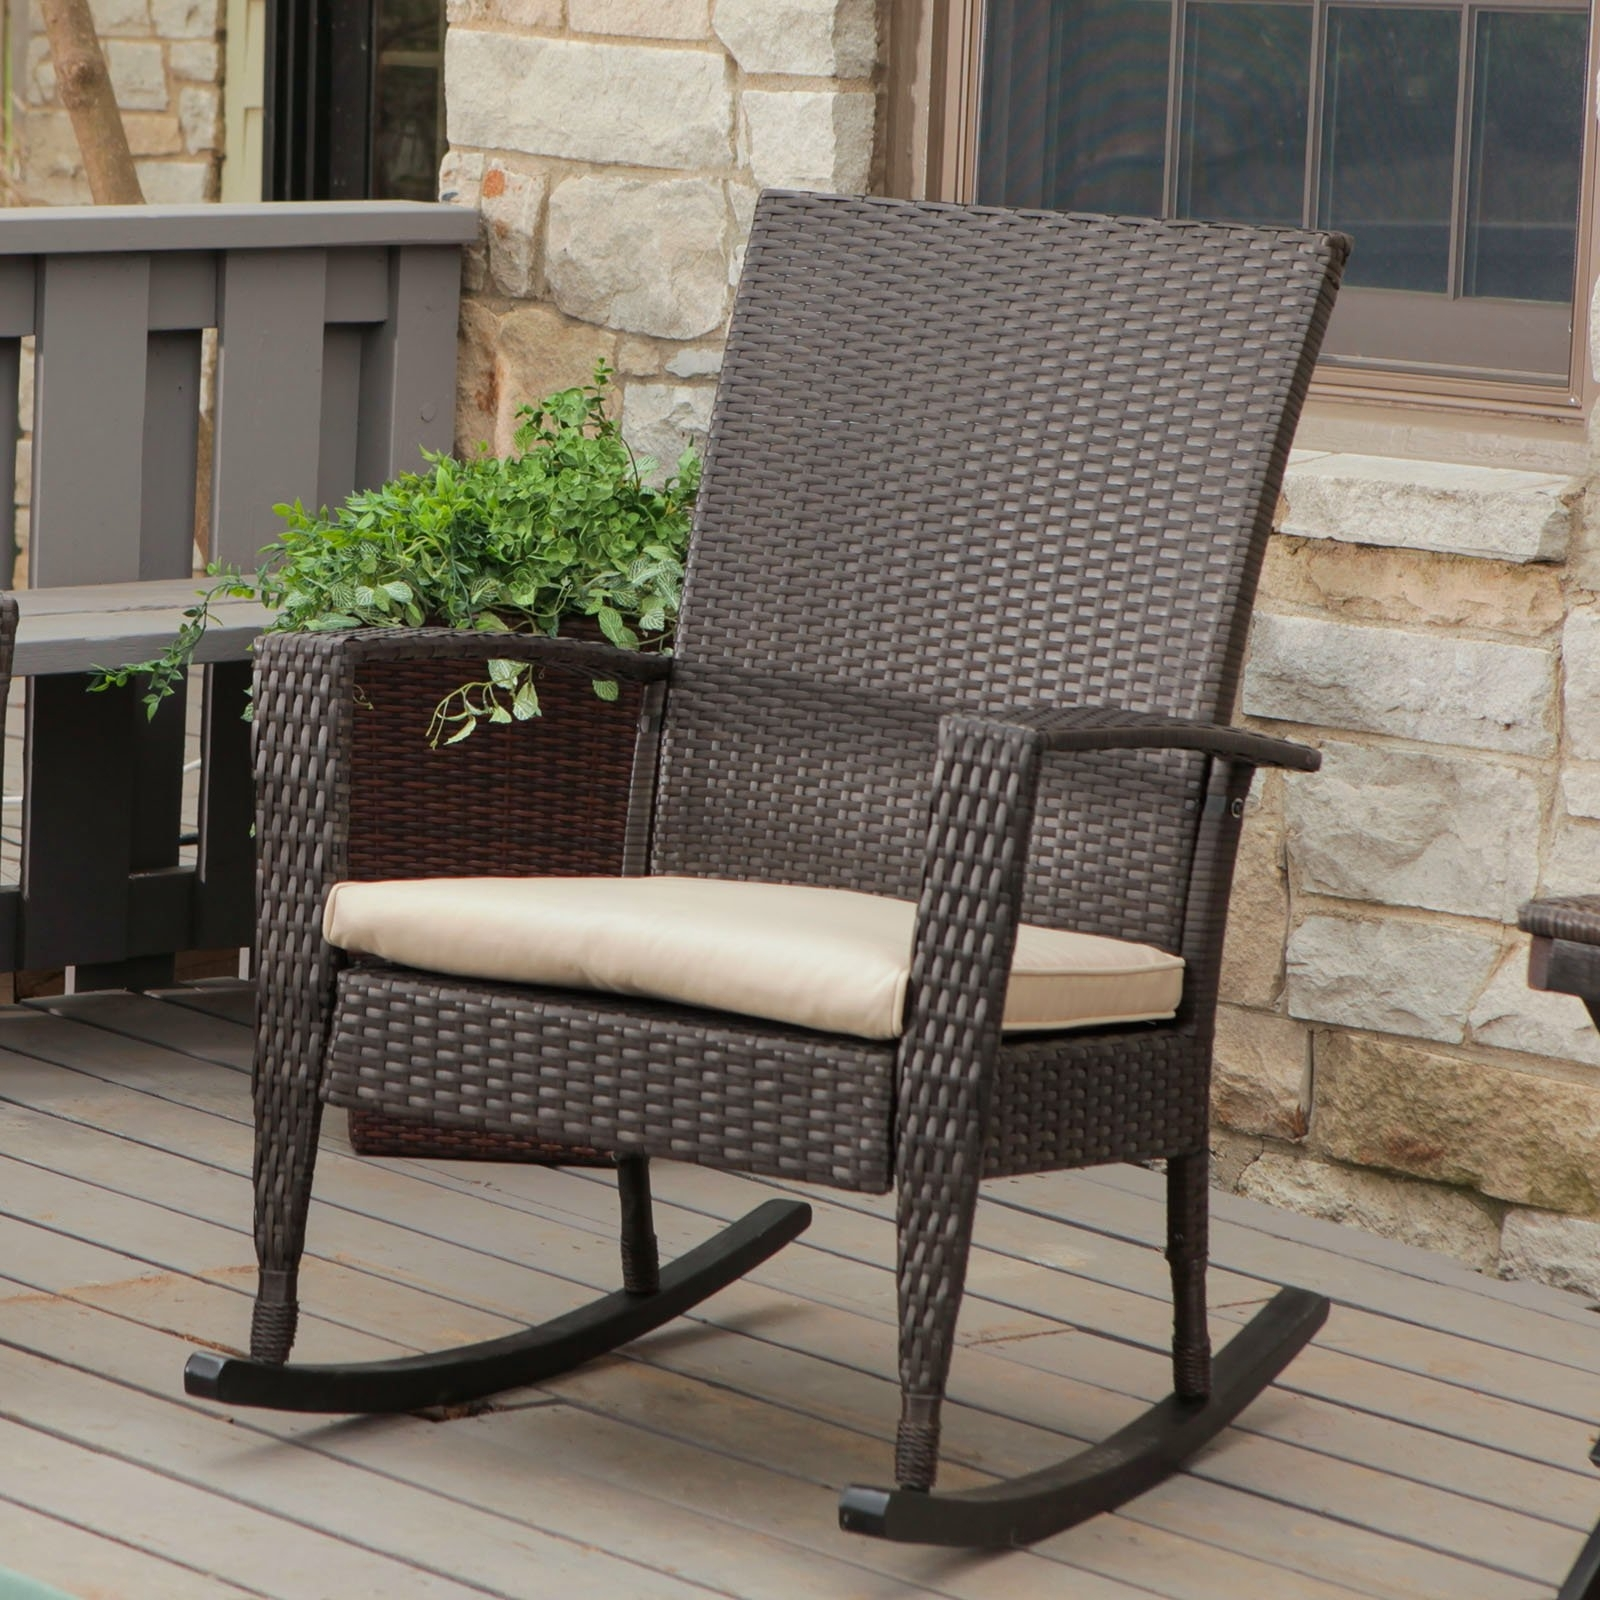 Small Patio Rocking Chairs With Regard To Popular Simple Vintage Wicker Rocking Chair On Small Home Remodel Ideas With (View 11 of 15)